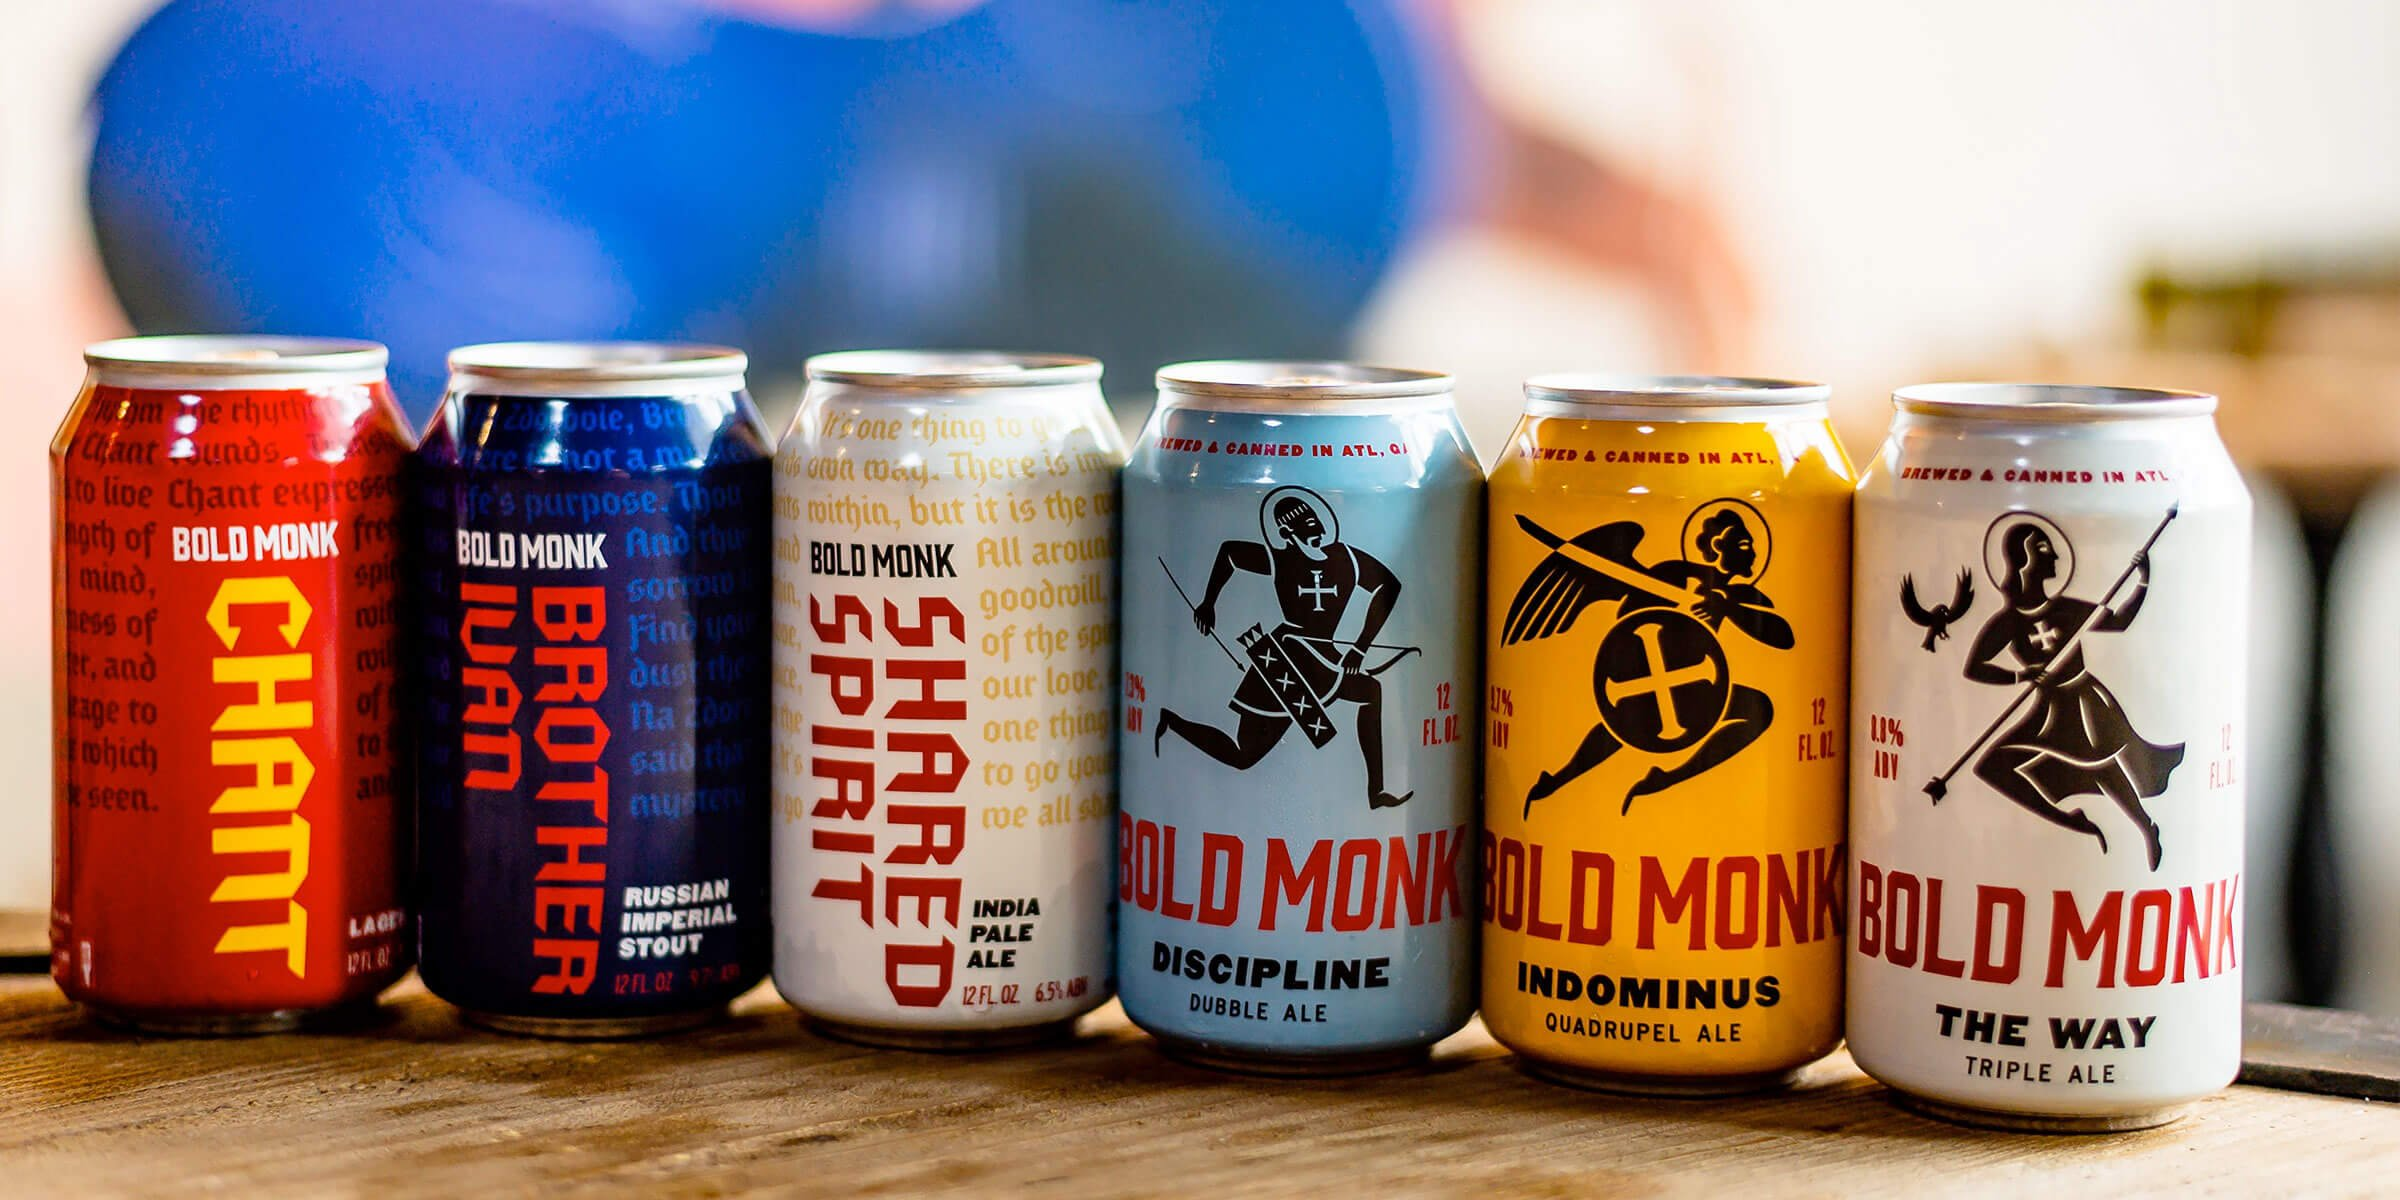 Lineup of canned beers offered by Bold Monk Brewing Co.